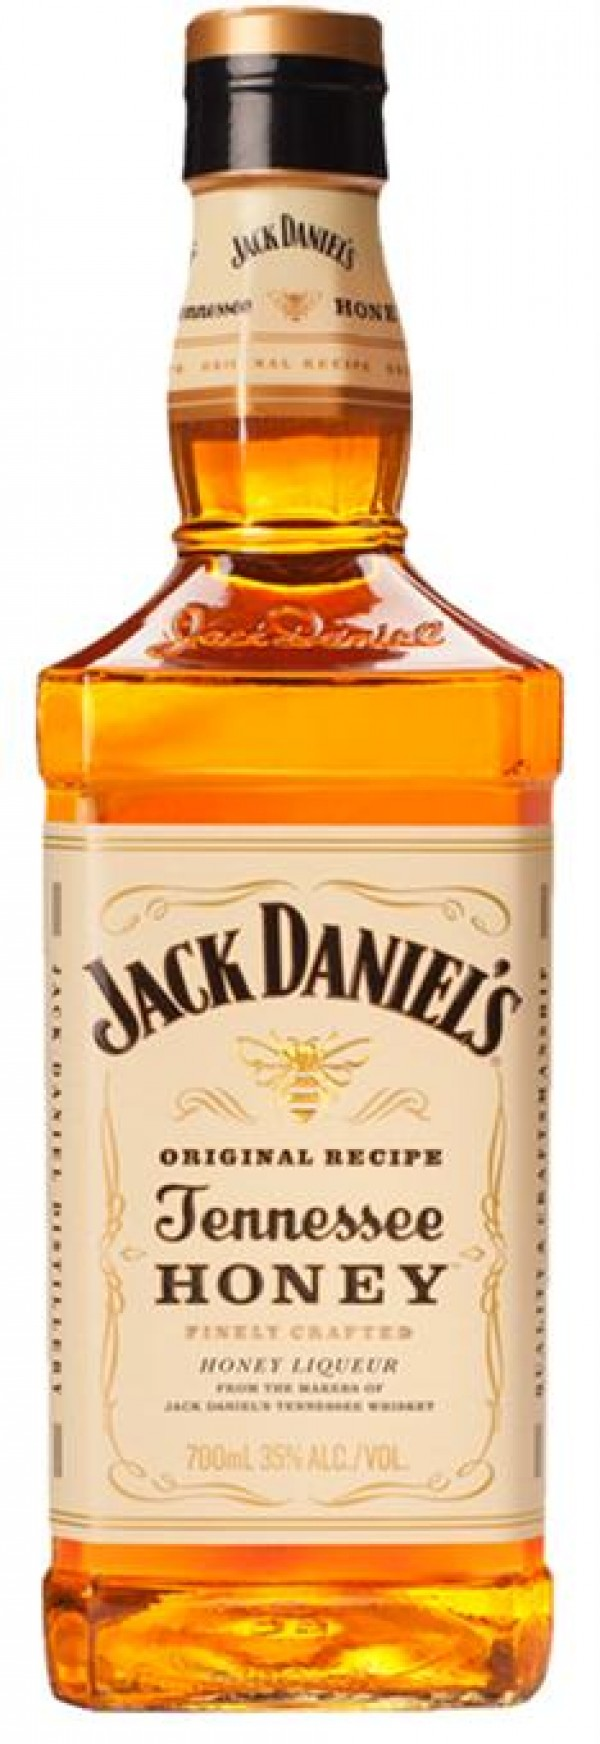 Jack Daniel's Tennessee Honey 1.75 Size